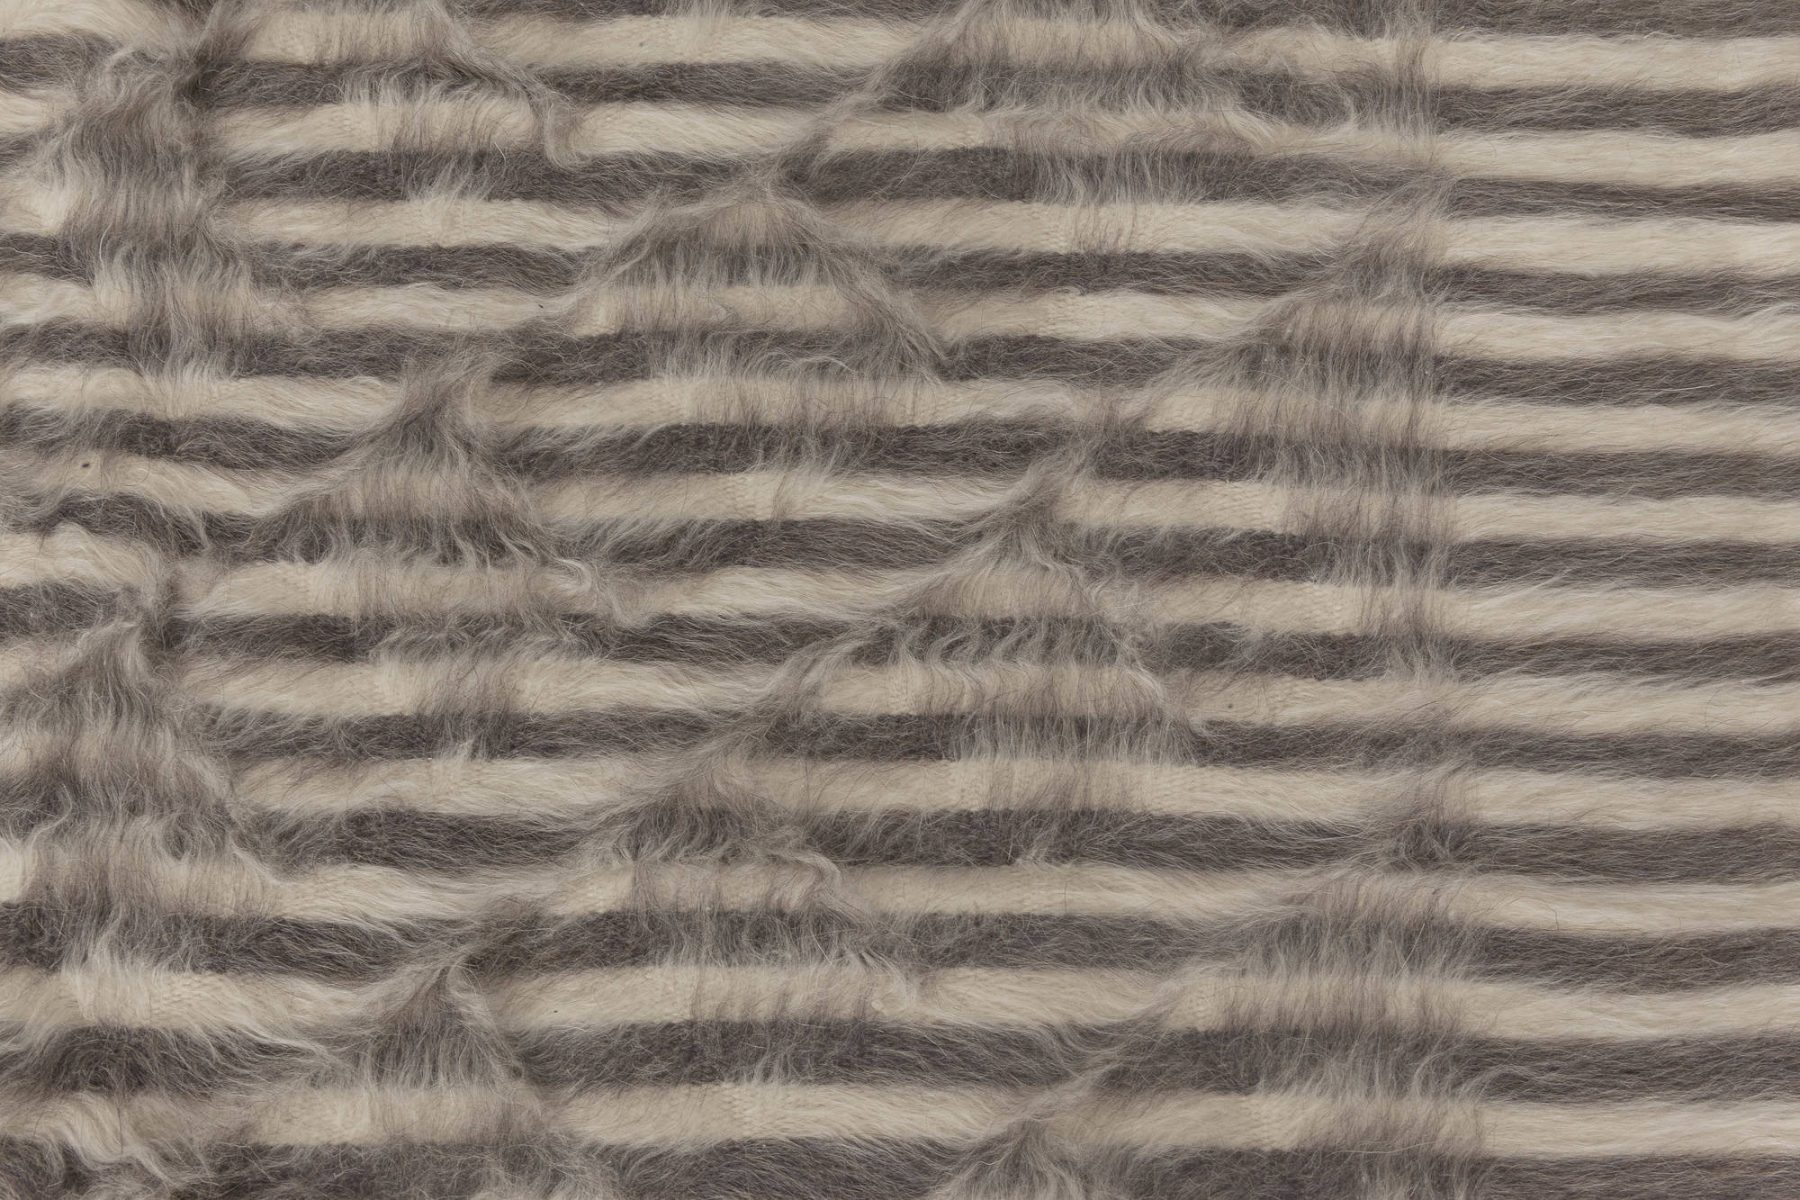 Taurus Collection Beige & Brown Hand Knotted of the Finest Goat Hair N11463